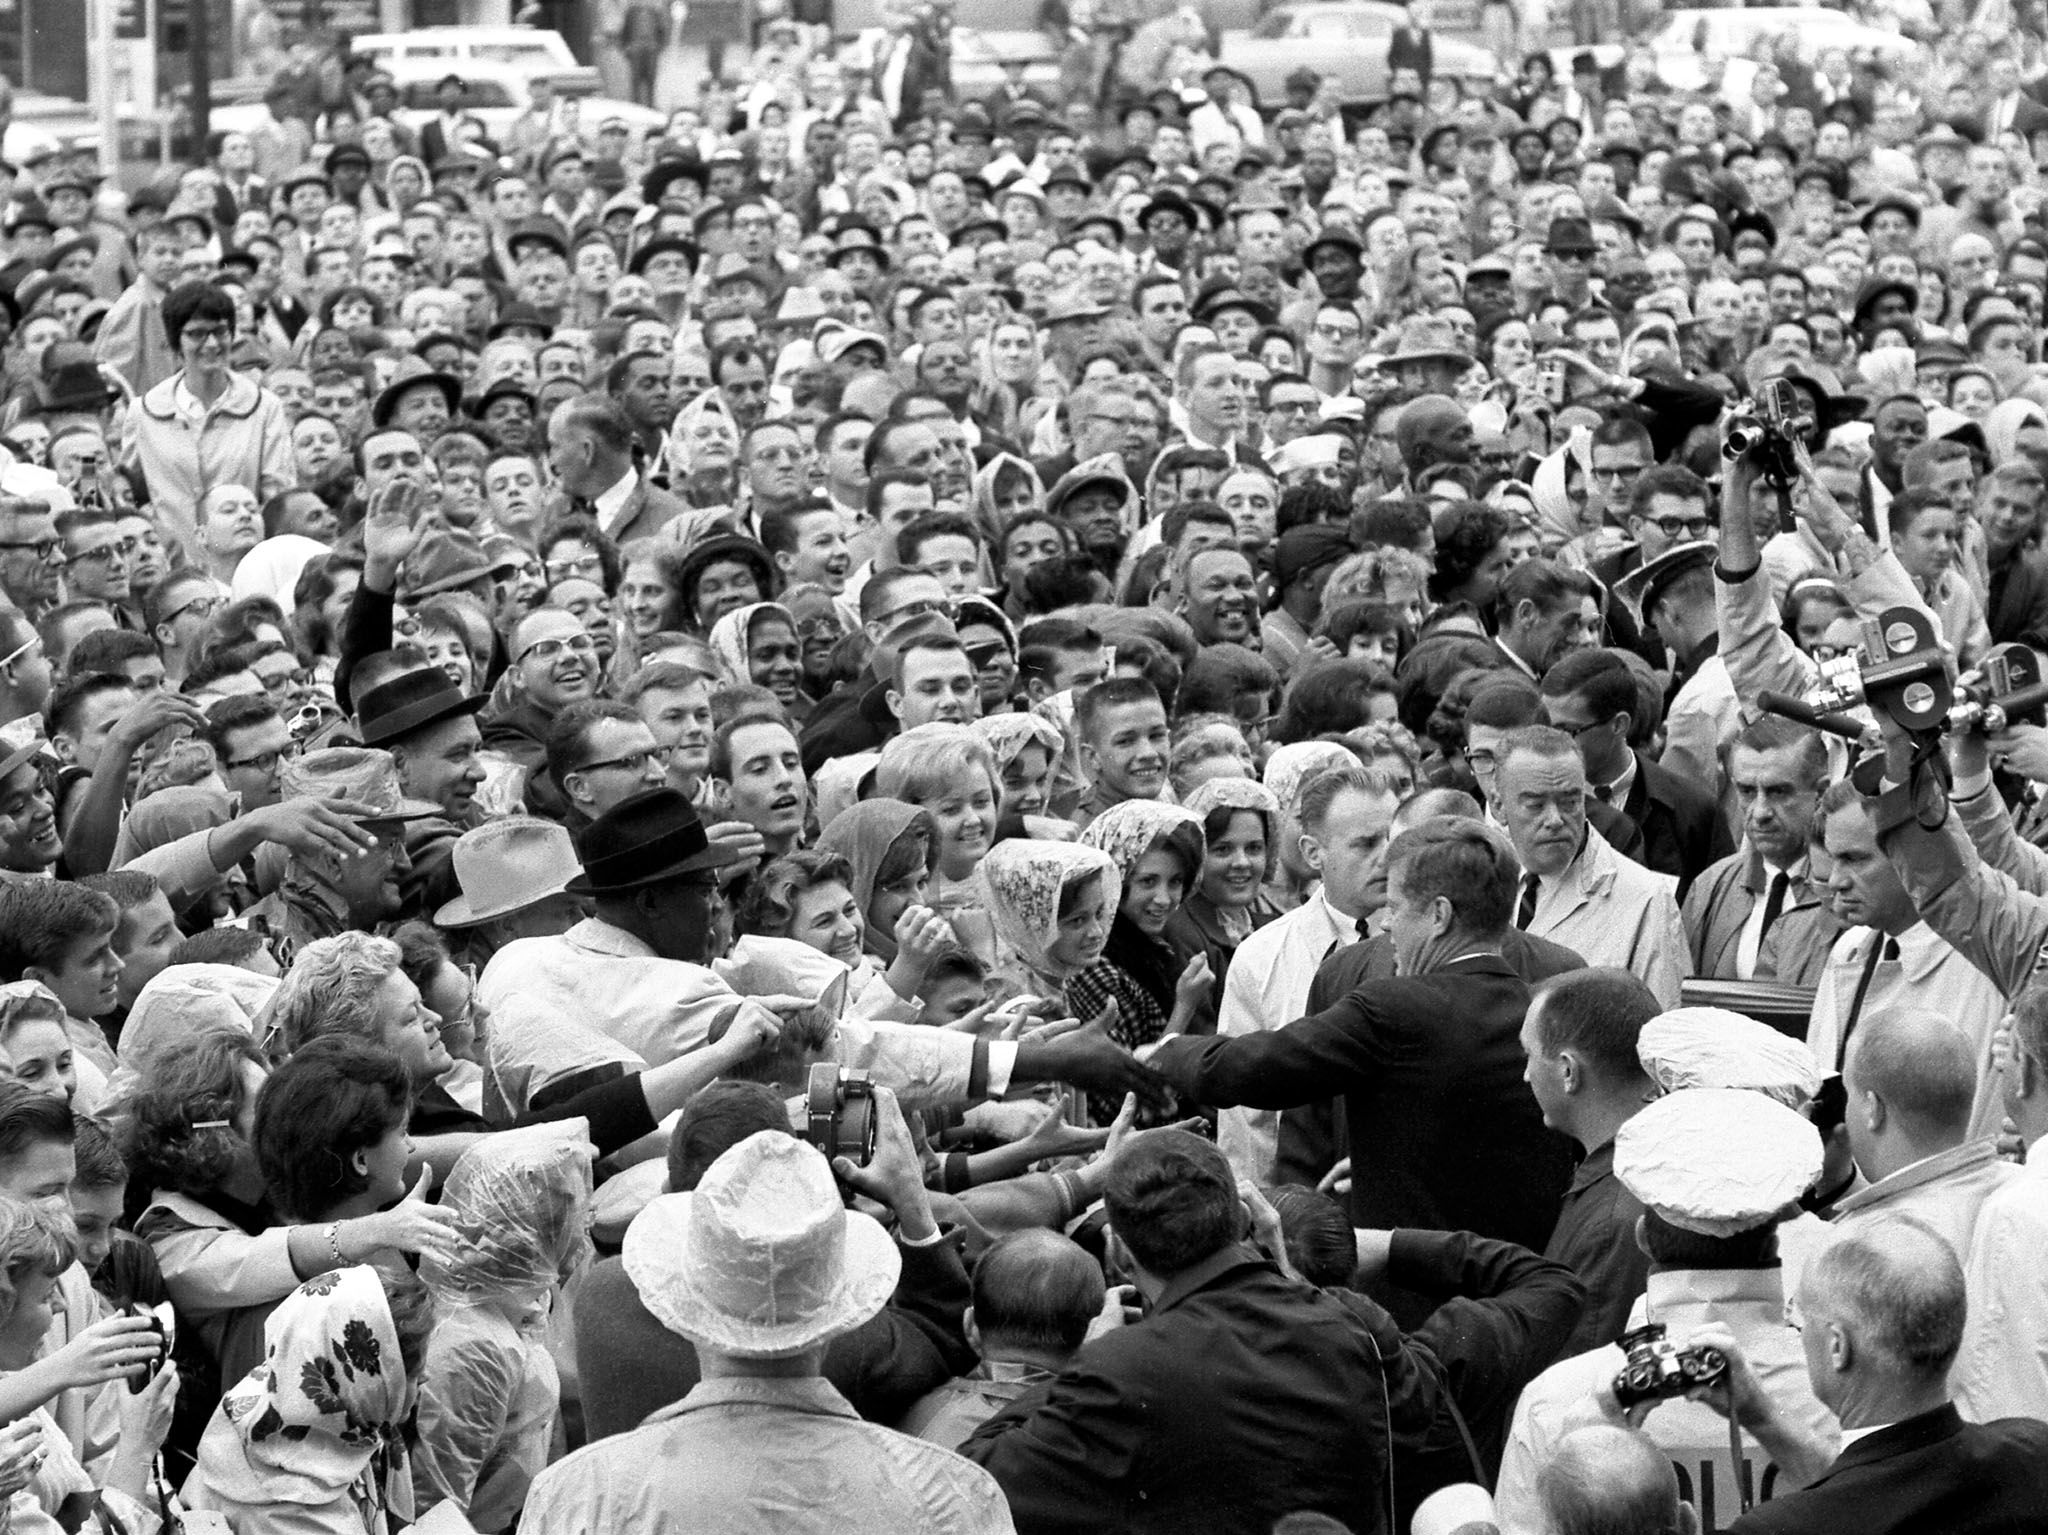 Love Field, Dallas, Texas: President Kennedy wades into a crowd of well-wishers and supporters... [Photo of the day - January 2017]